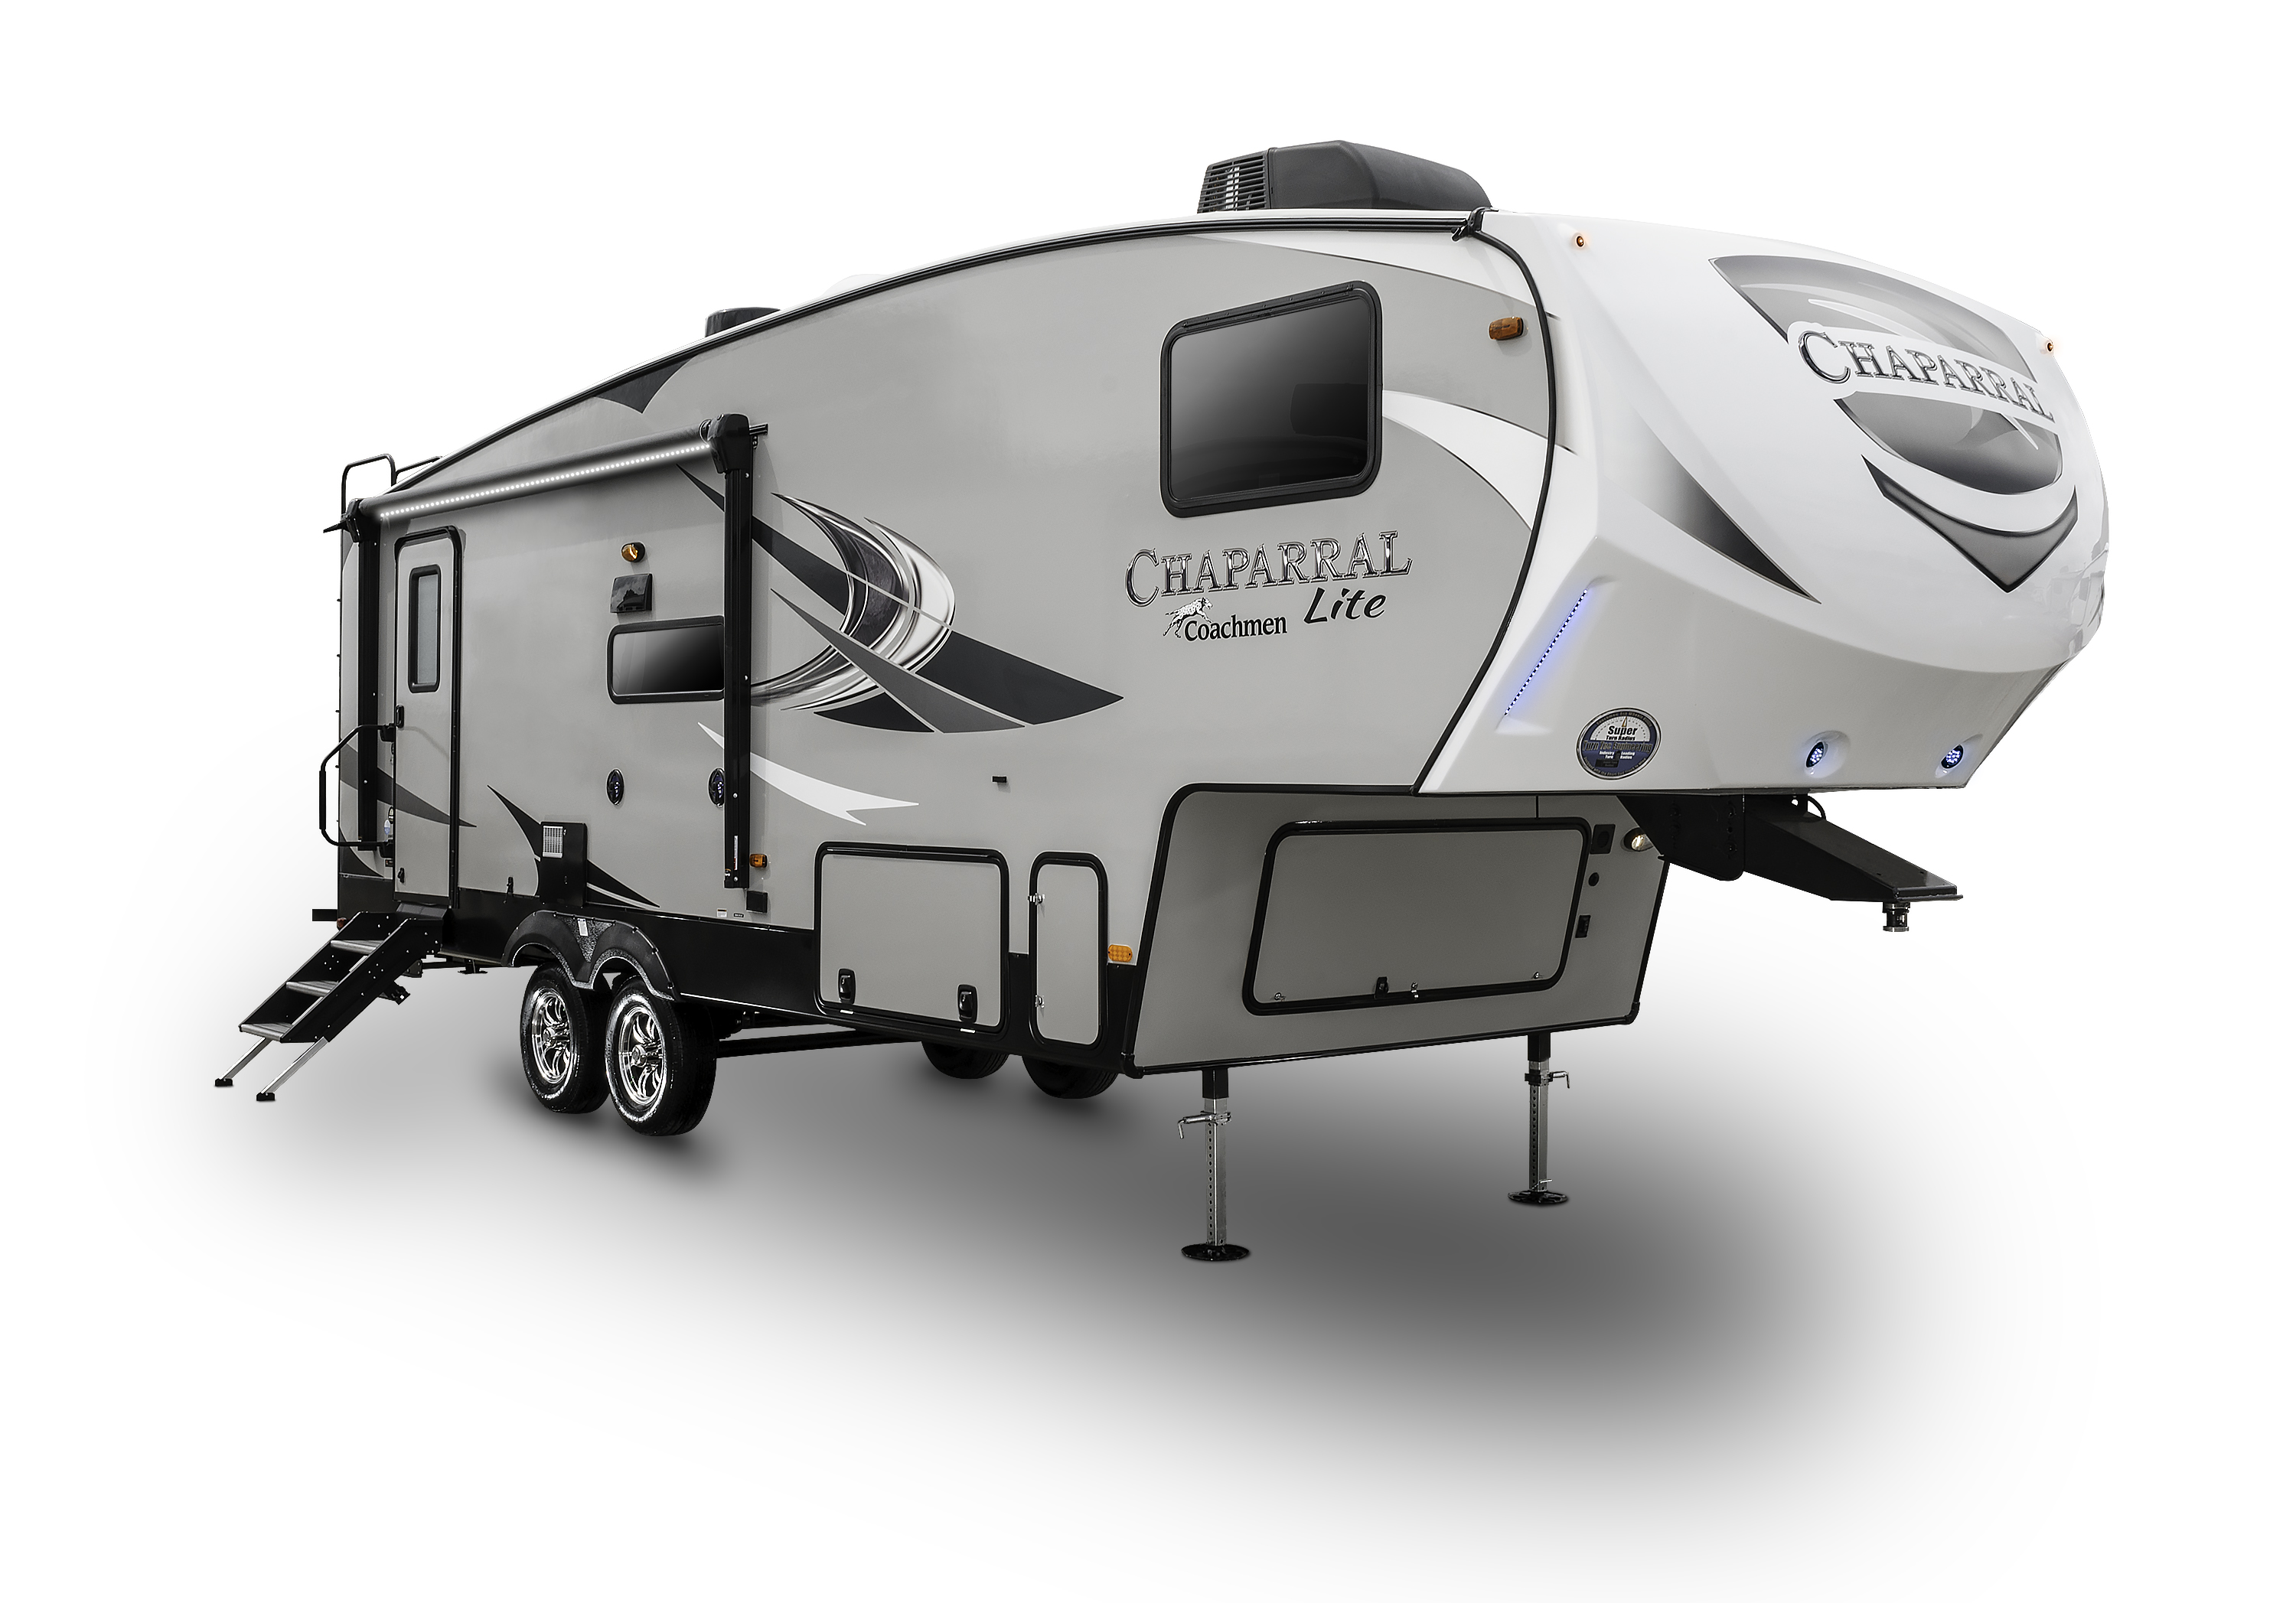 Top 5 Fifth Wheel RVs: Coachmen Chaparral Lite